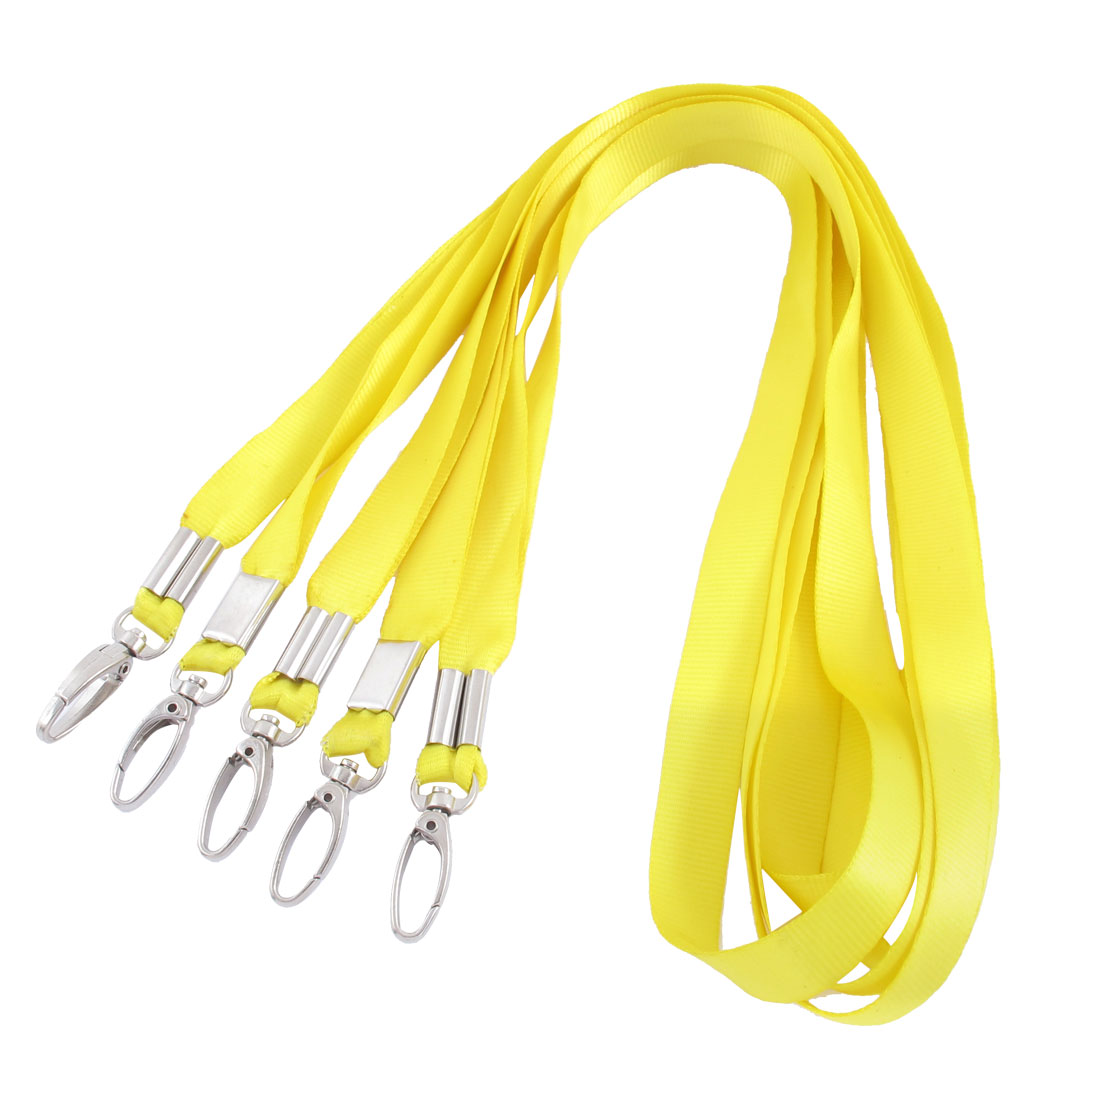 Nylon Cell Phone MP3 Badge Tag Work Card Holder Lanyard Neck Strap Yellow 5pcs